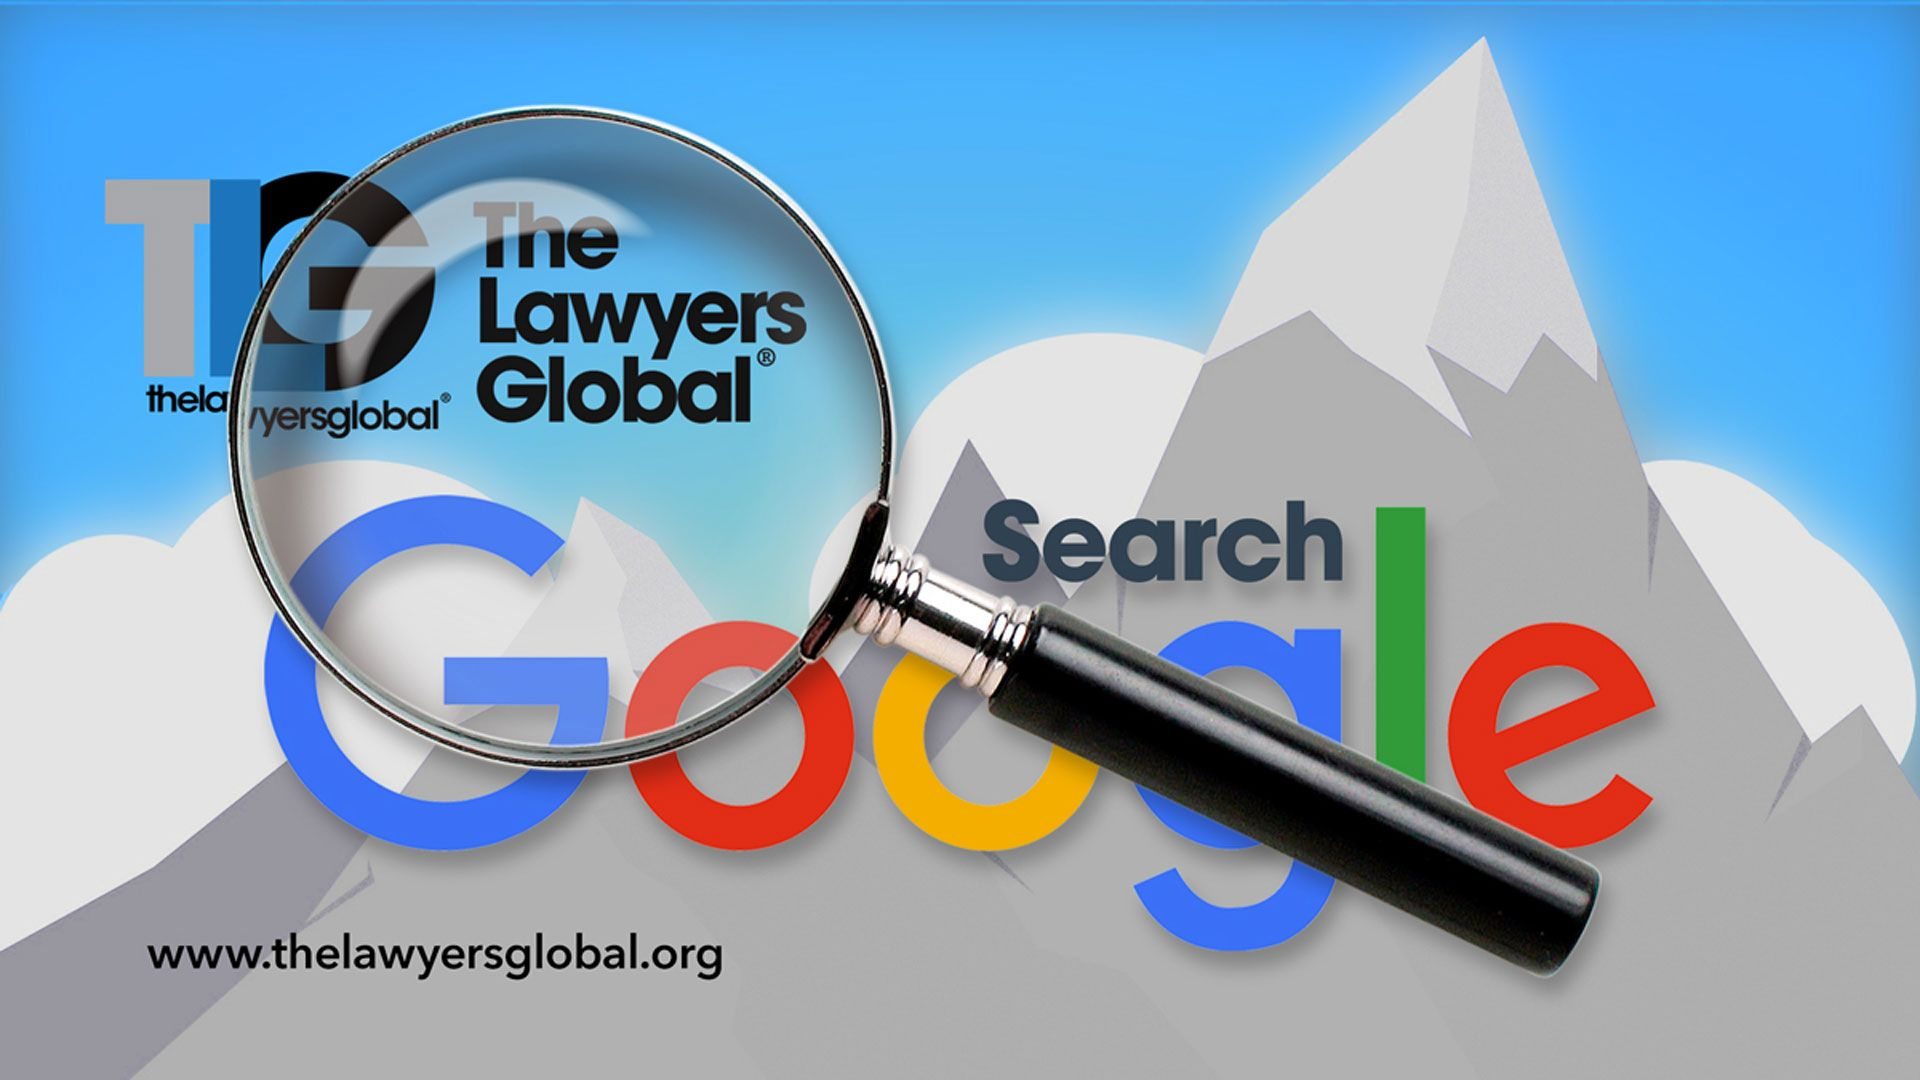 The Lawyers Global on top of Google Search